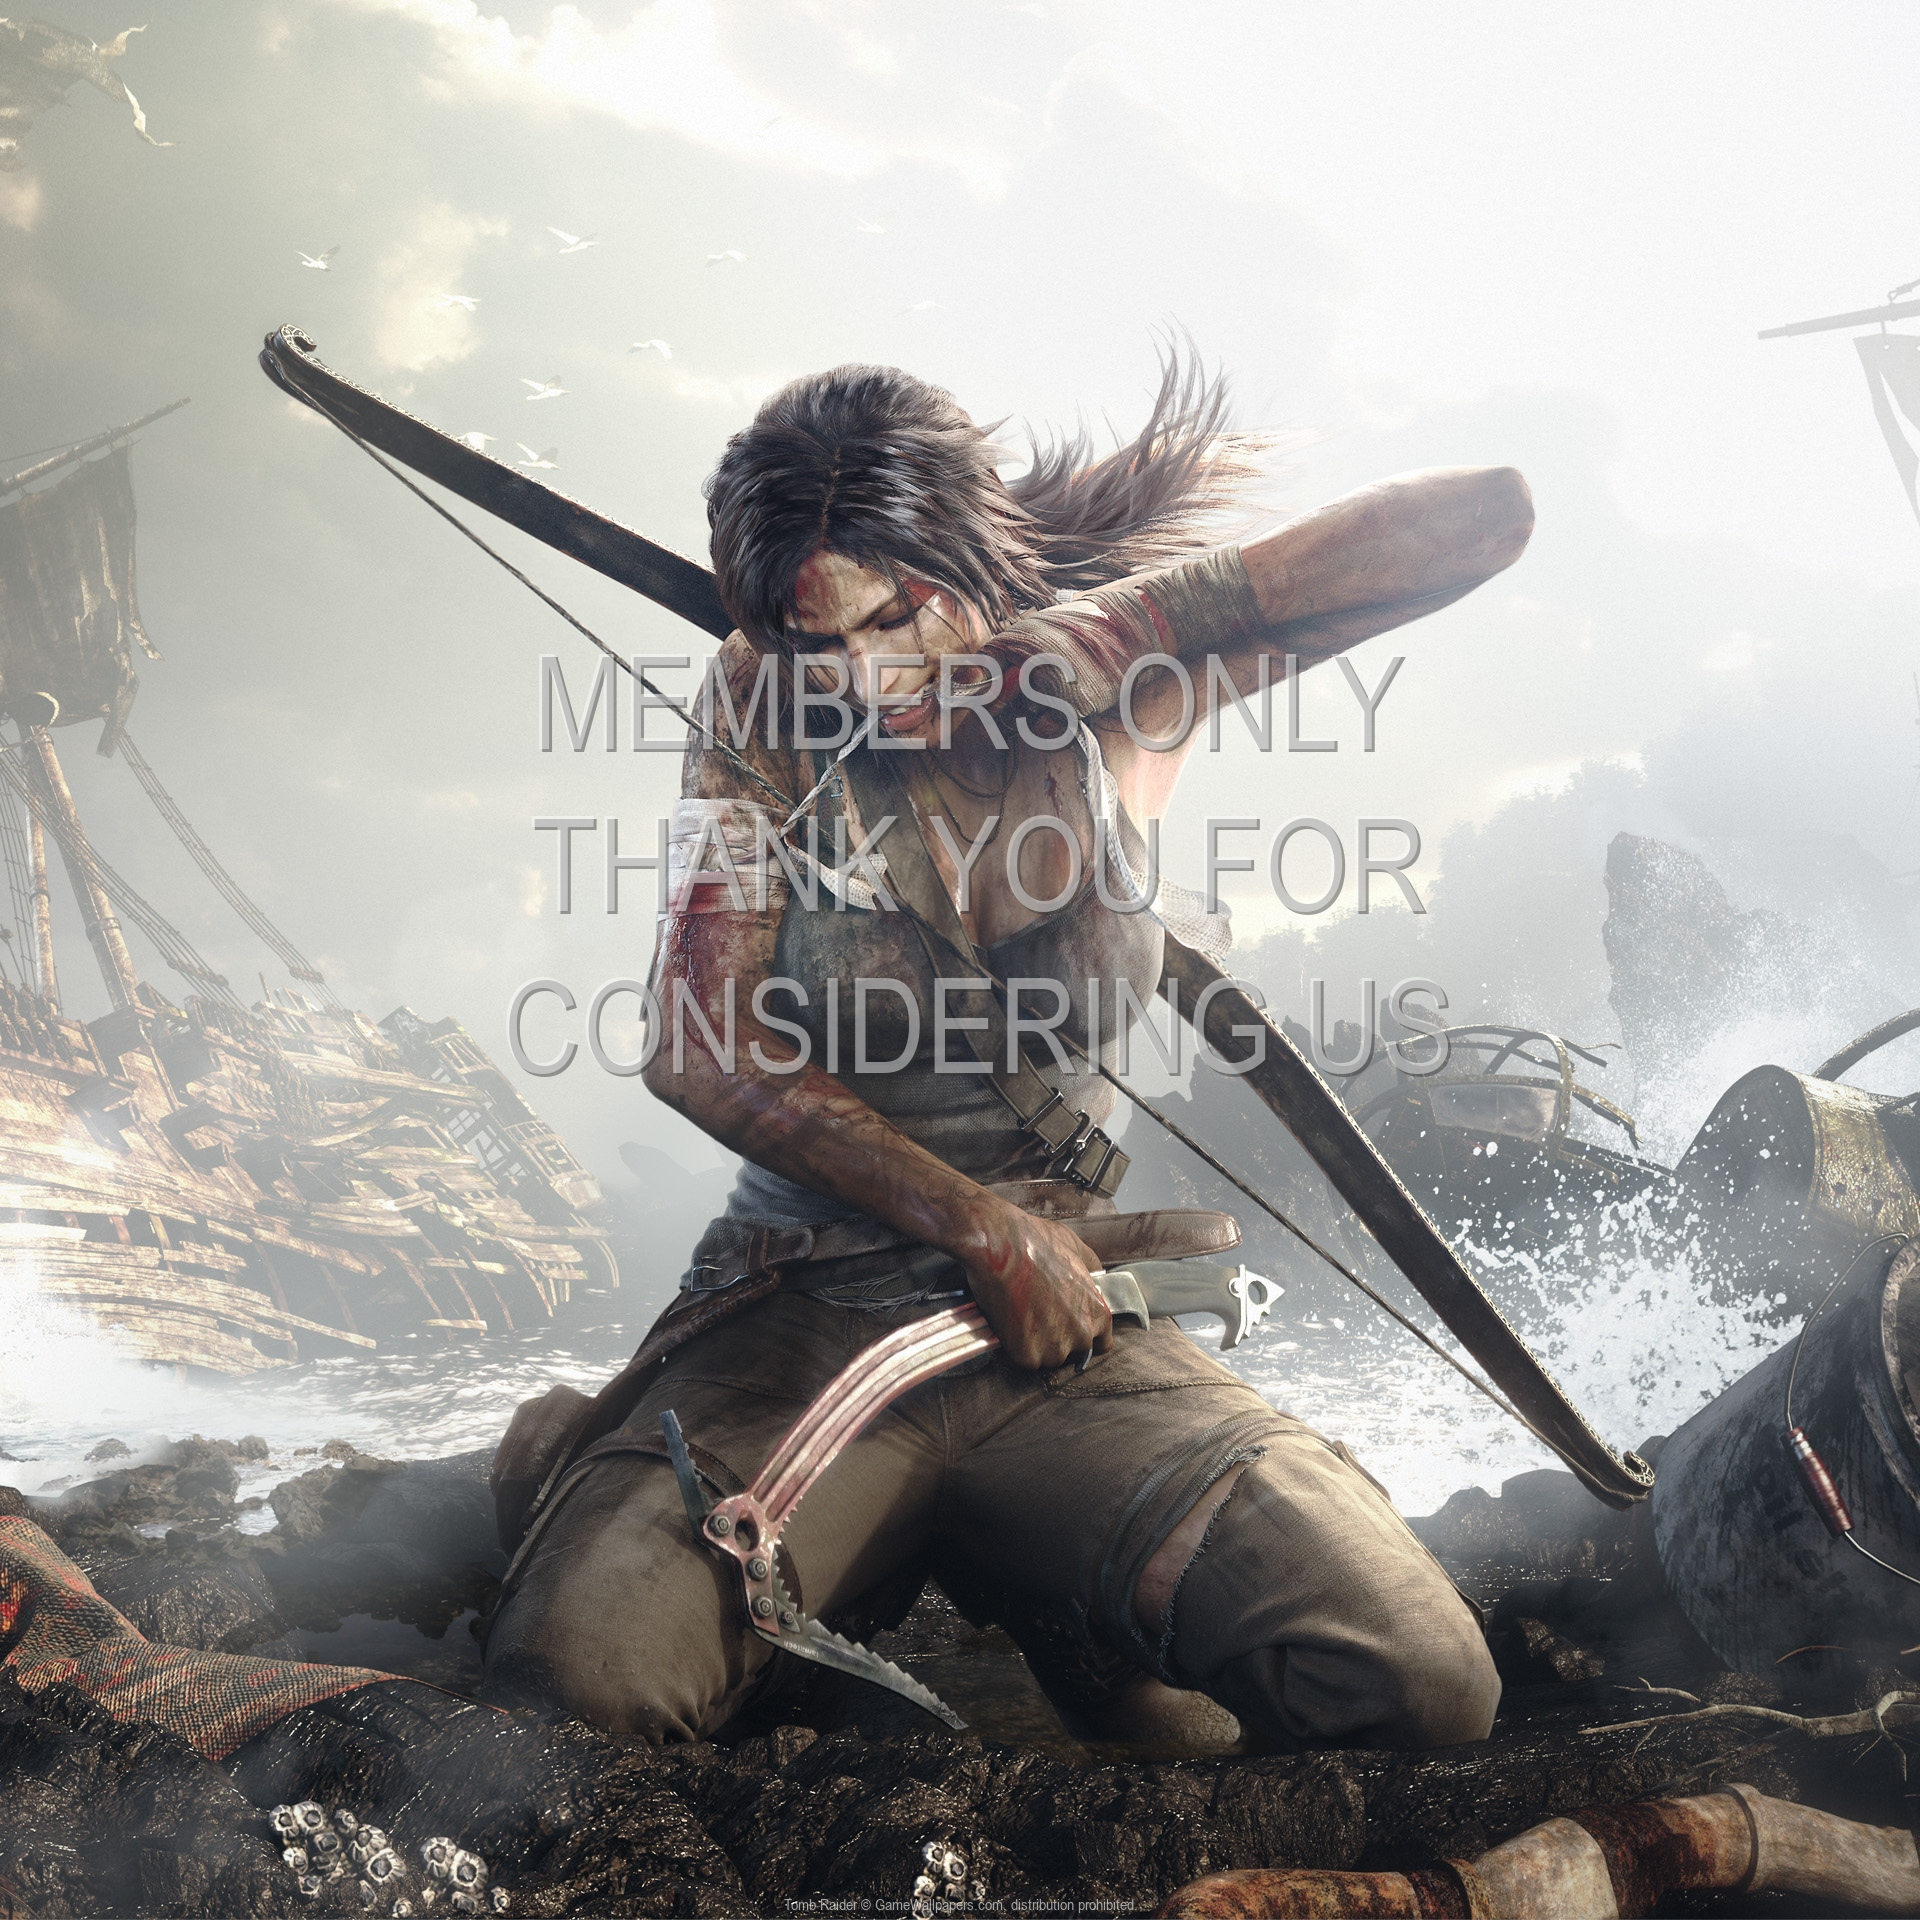 Tomb Raider 1920x1080 Mobile wallpaper or background 01